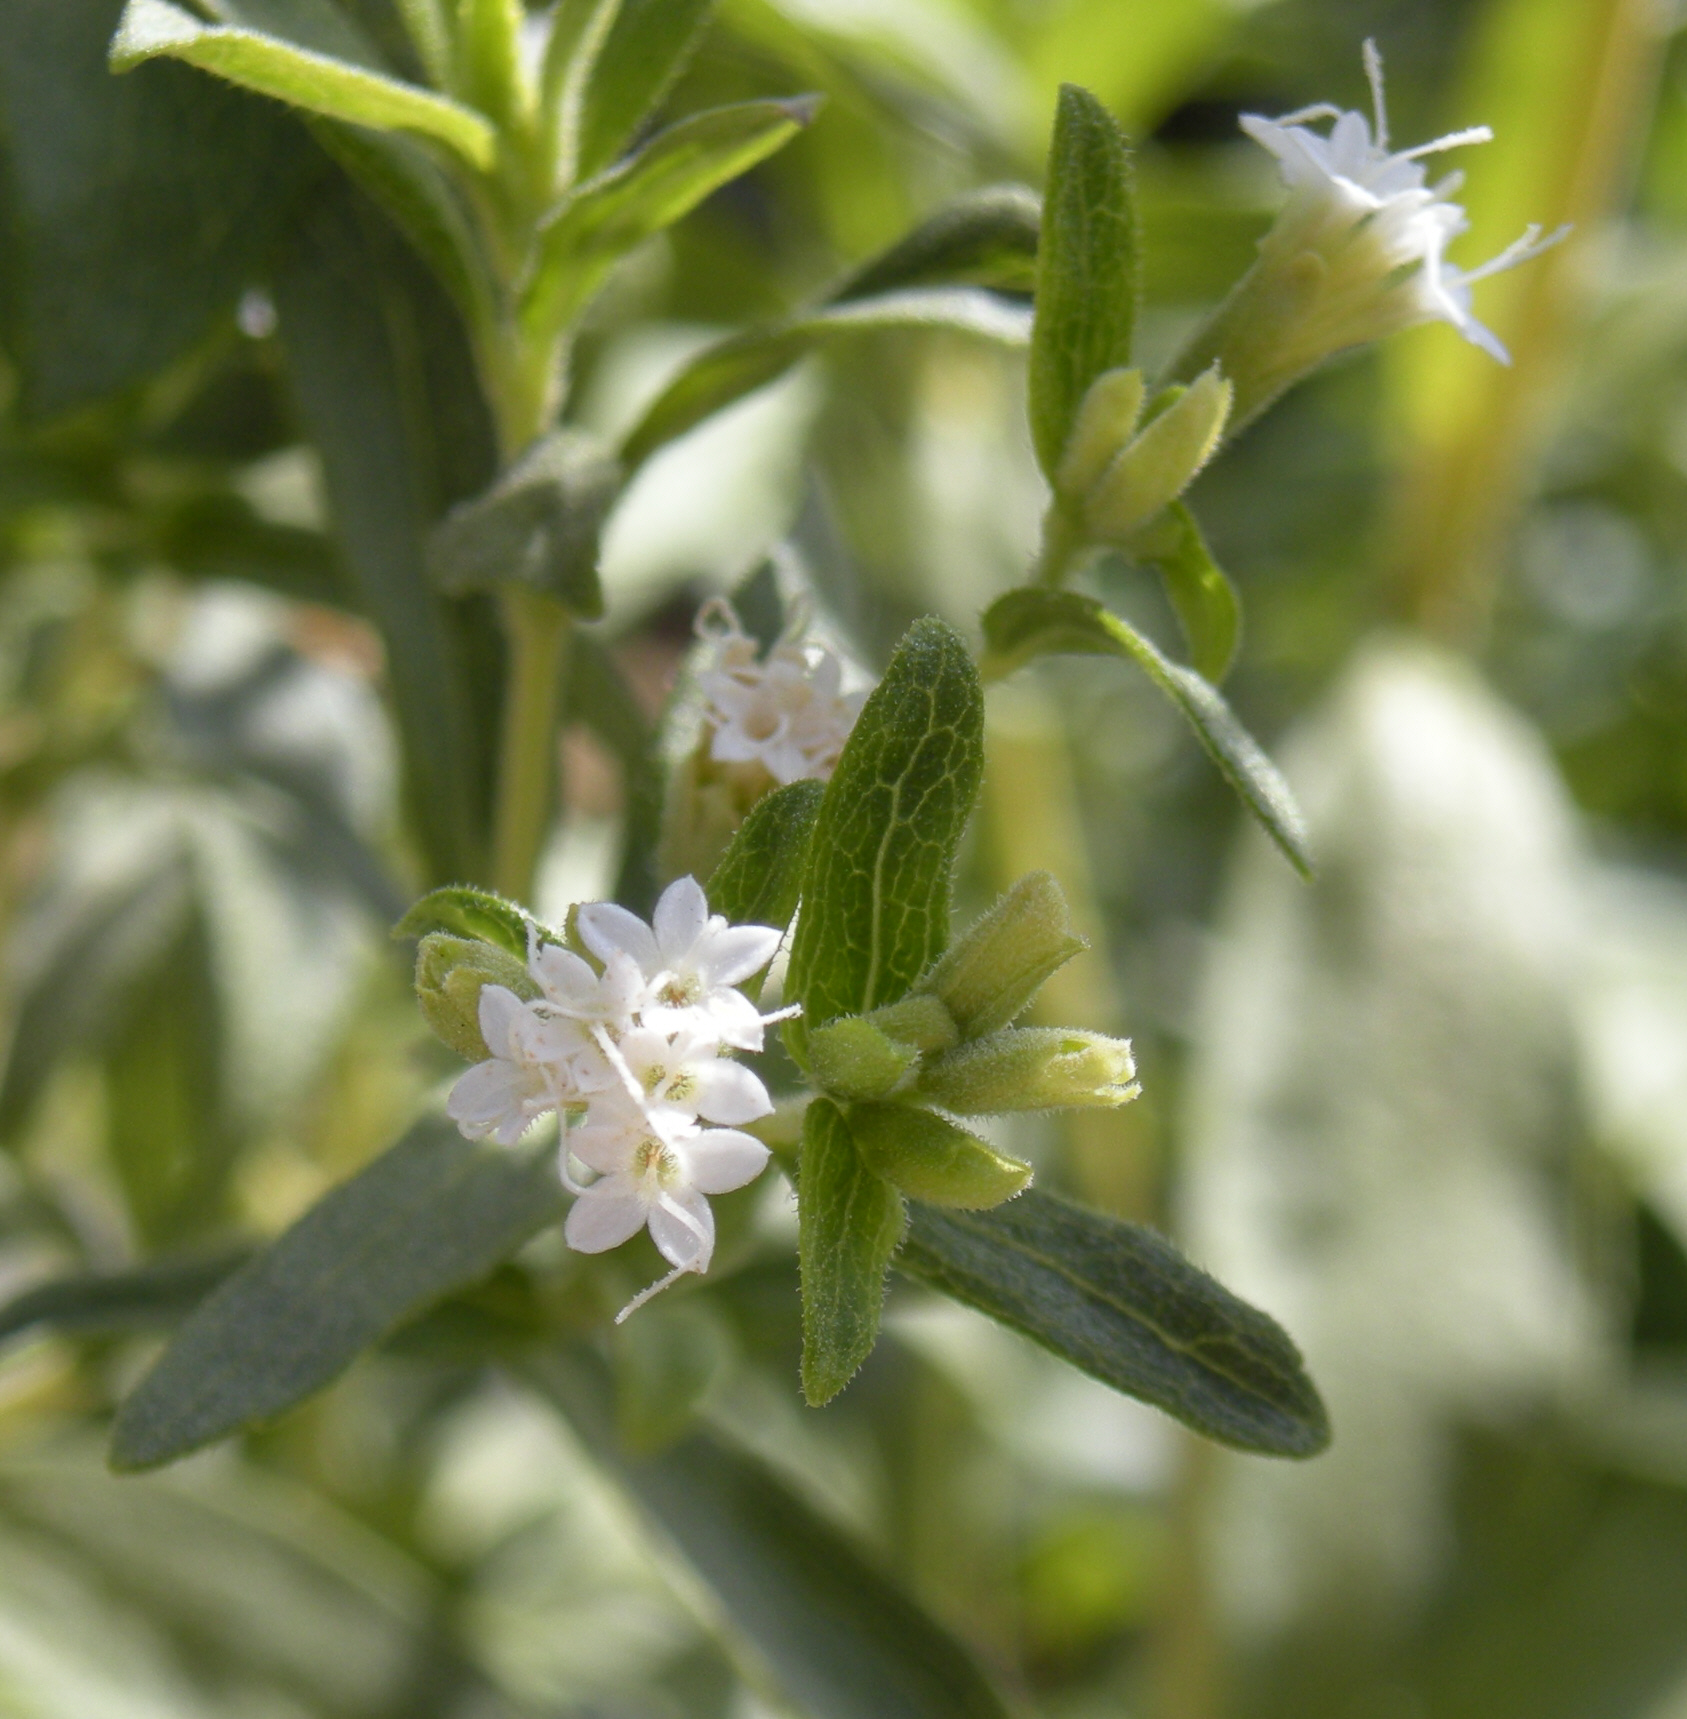 File:Stevia rebaudiana flowers.jpg - Wikimedia Commons